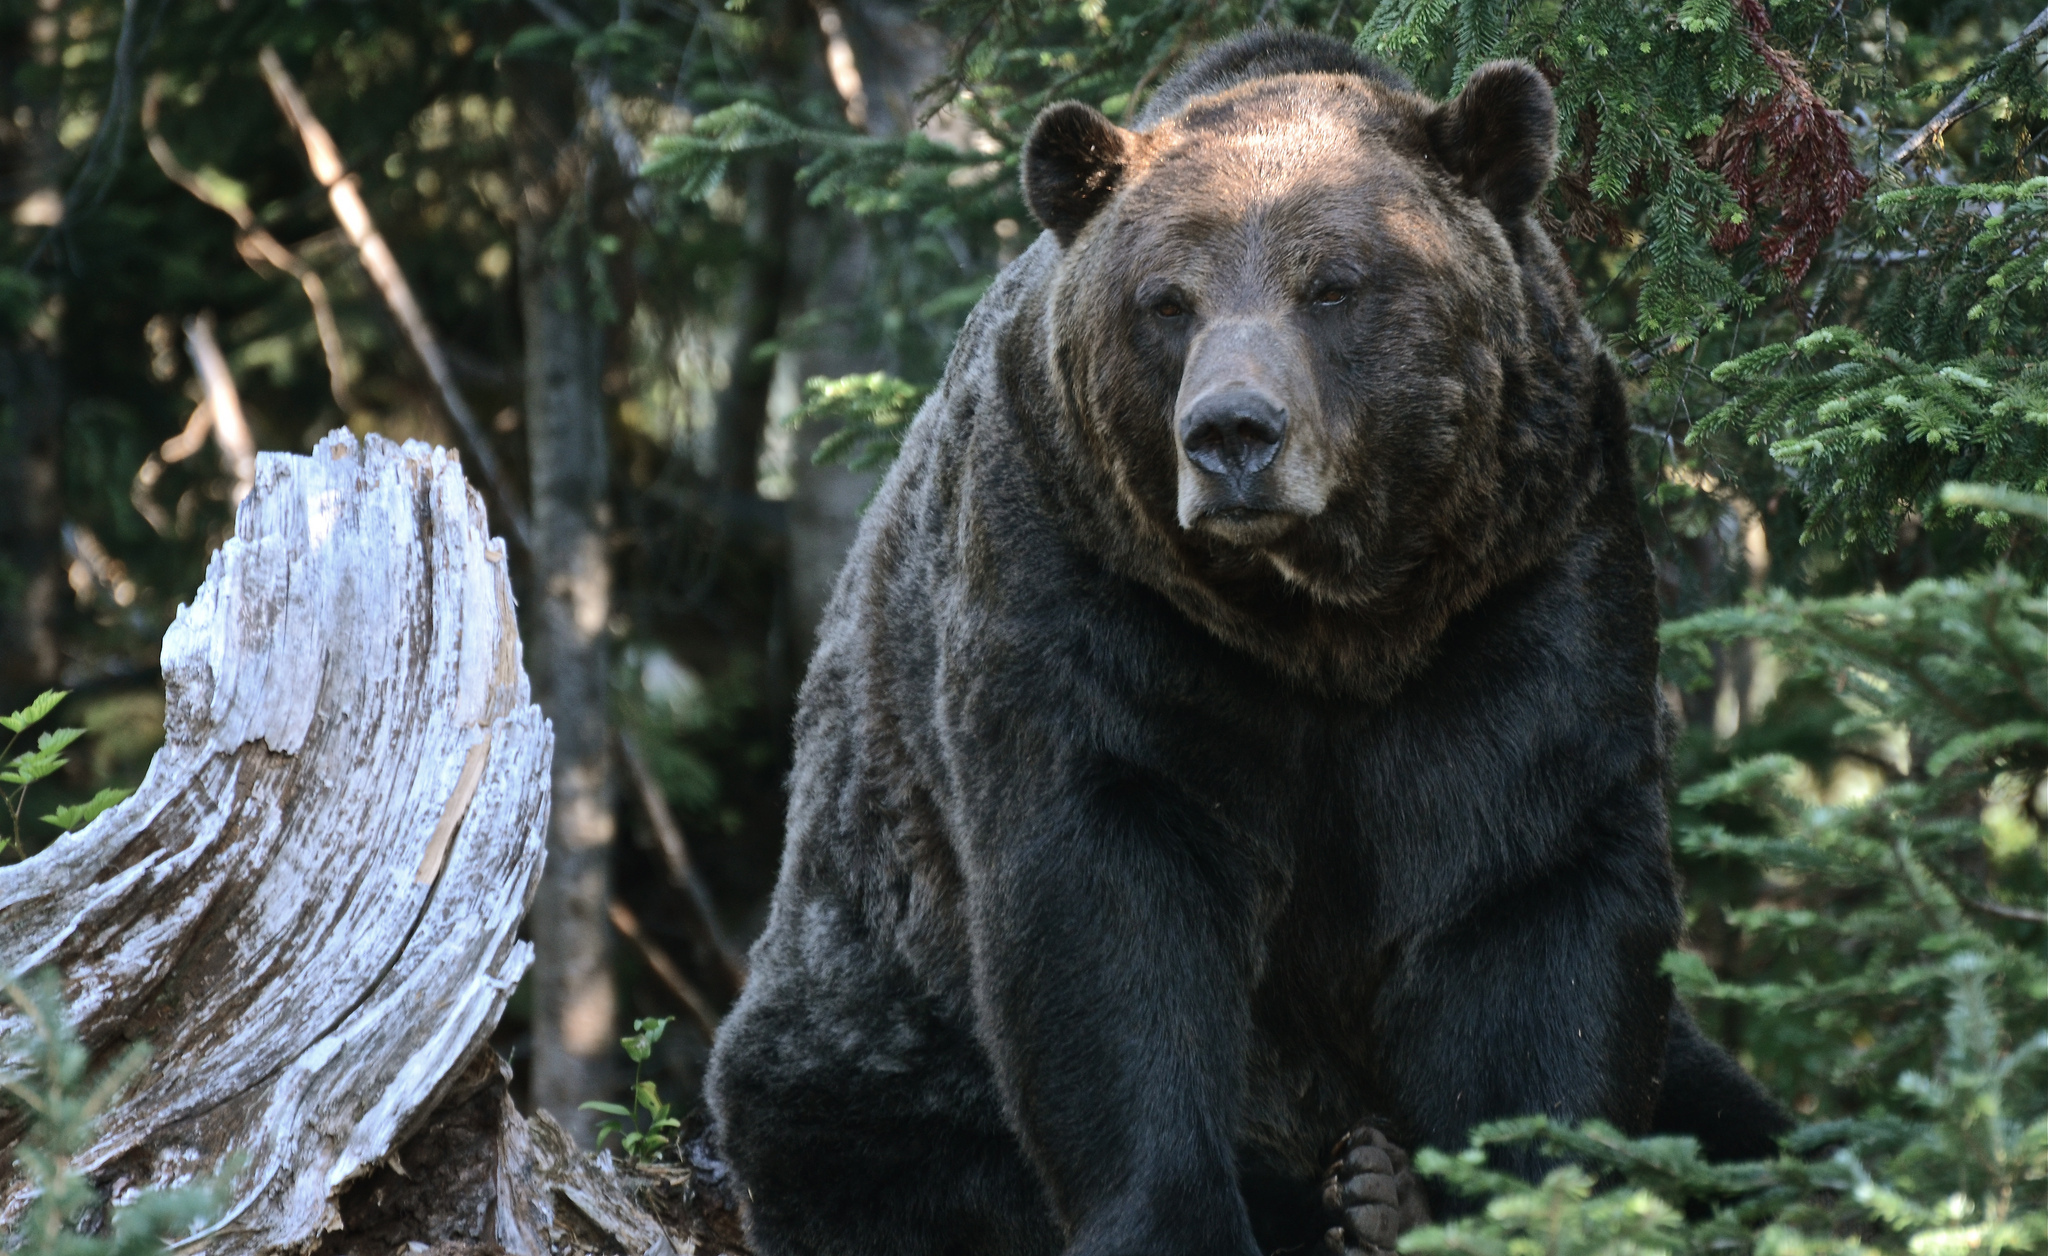 125210 Screensavers and Wallpapers Bear for phone. Download Animals, Trees, Forest, Bear, Grizzly, Grizzly Bear pictures for free